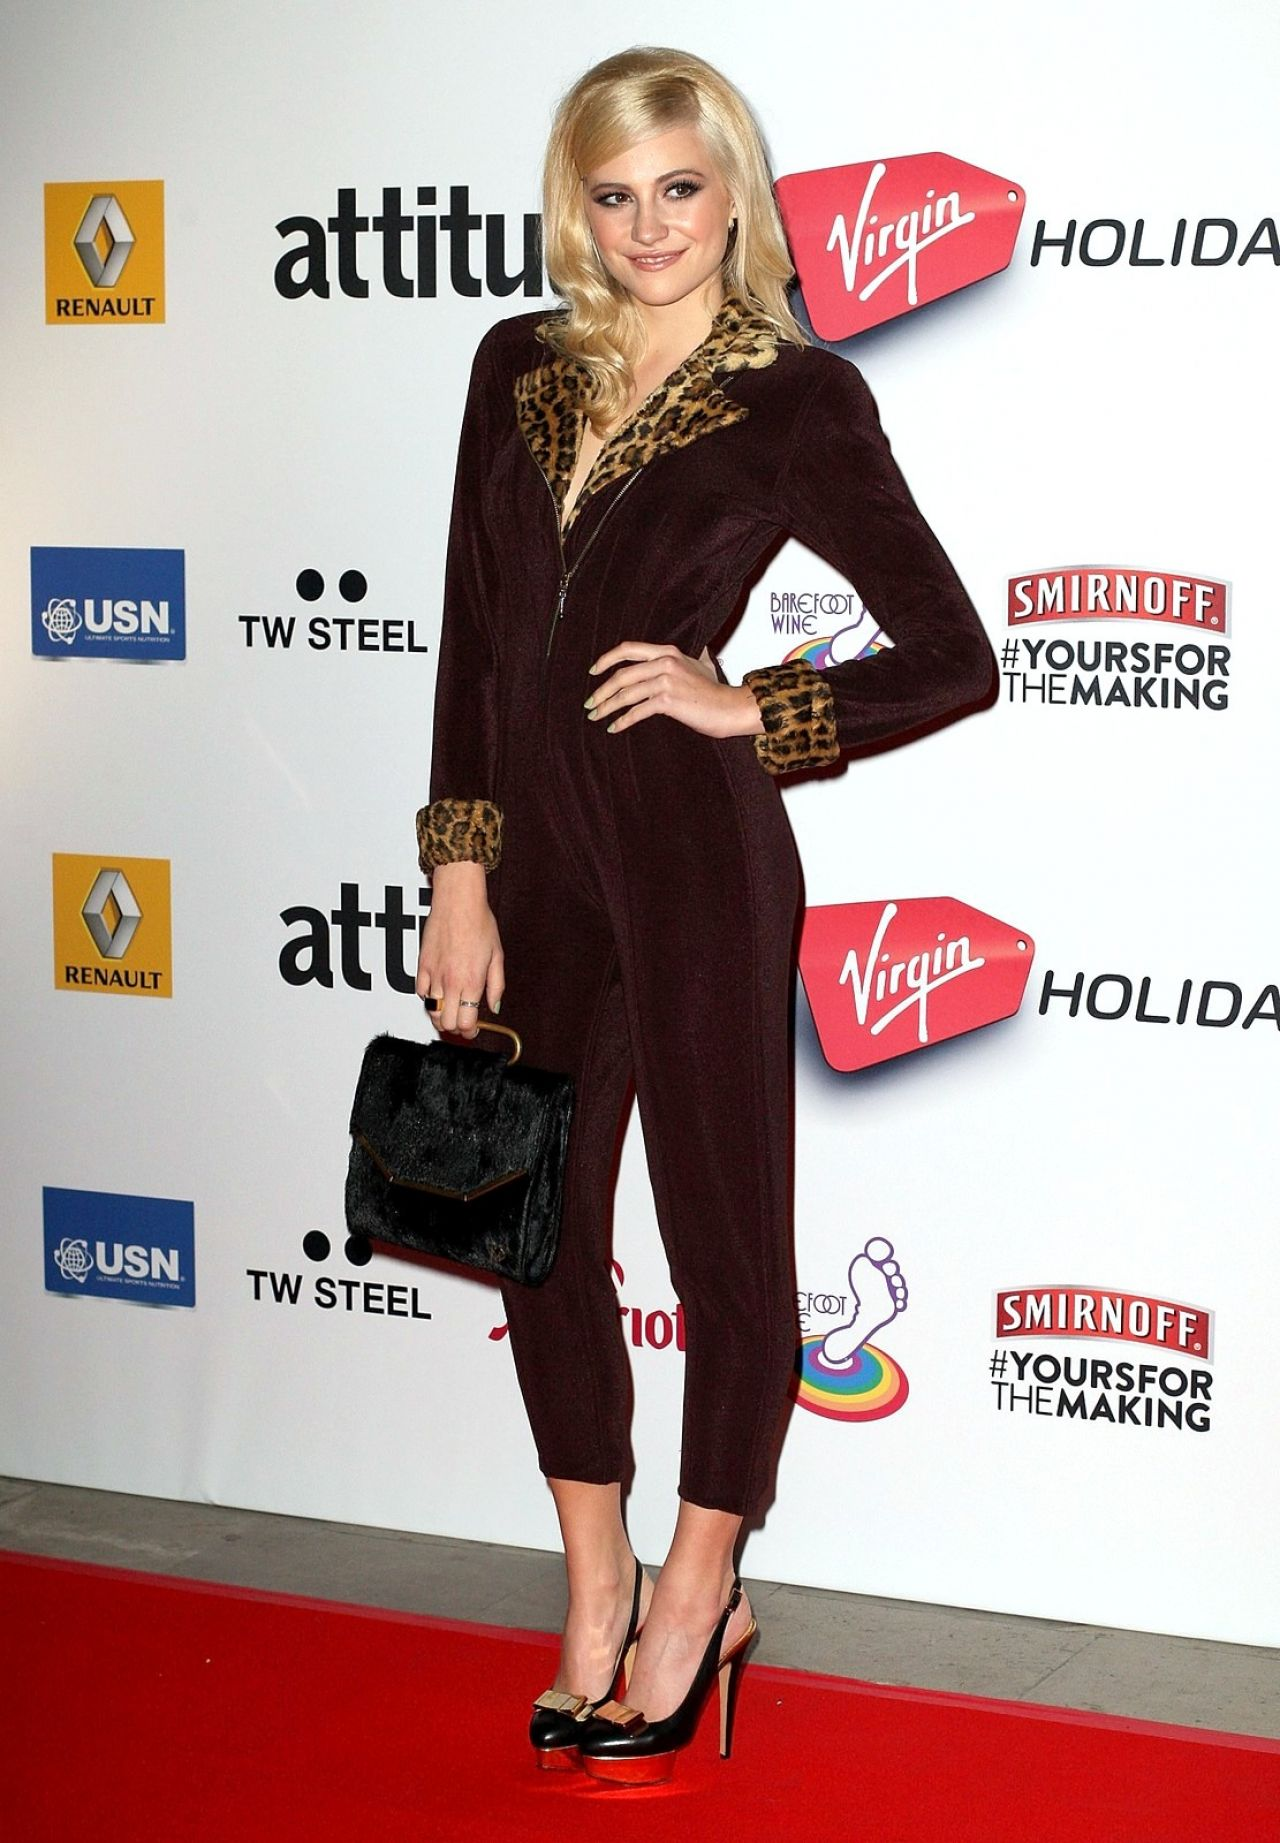 Pixie Lott - Attitude Magazine Awards in London